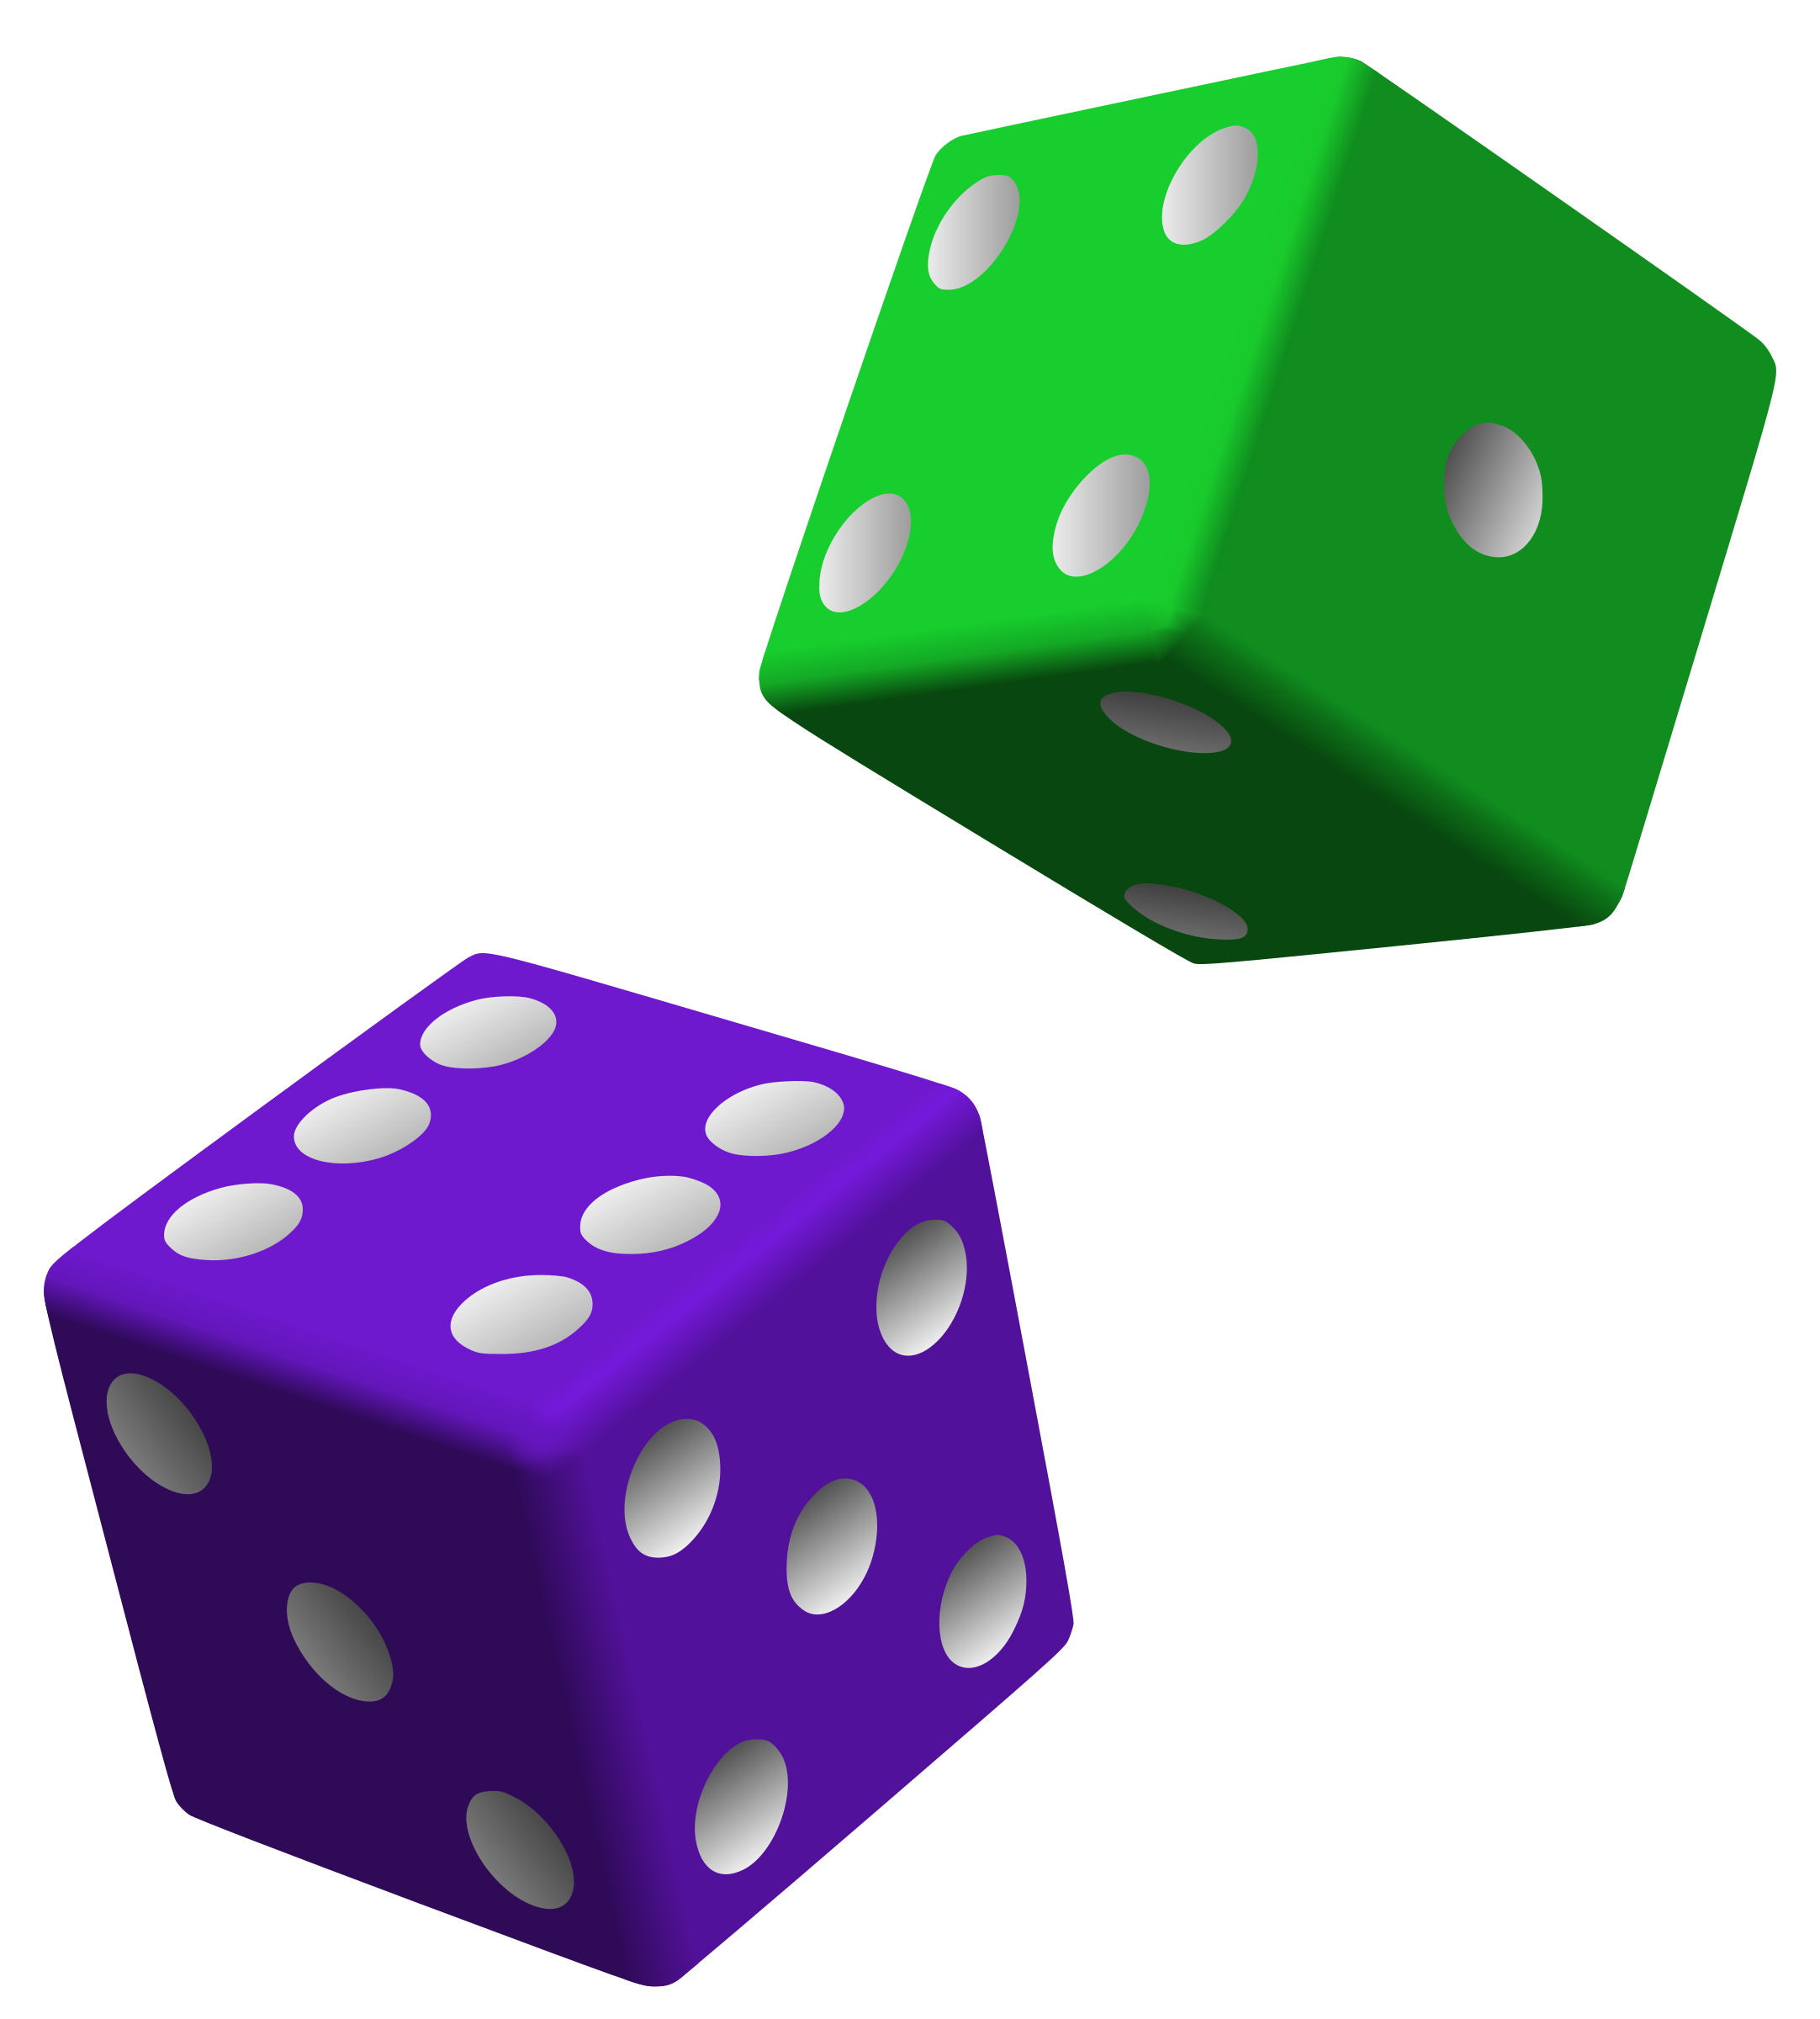 Green and Purple Dice by eady